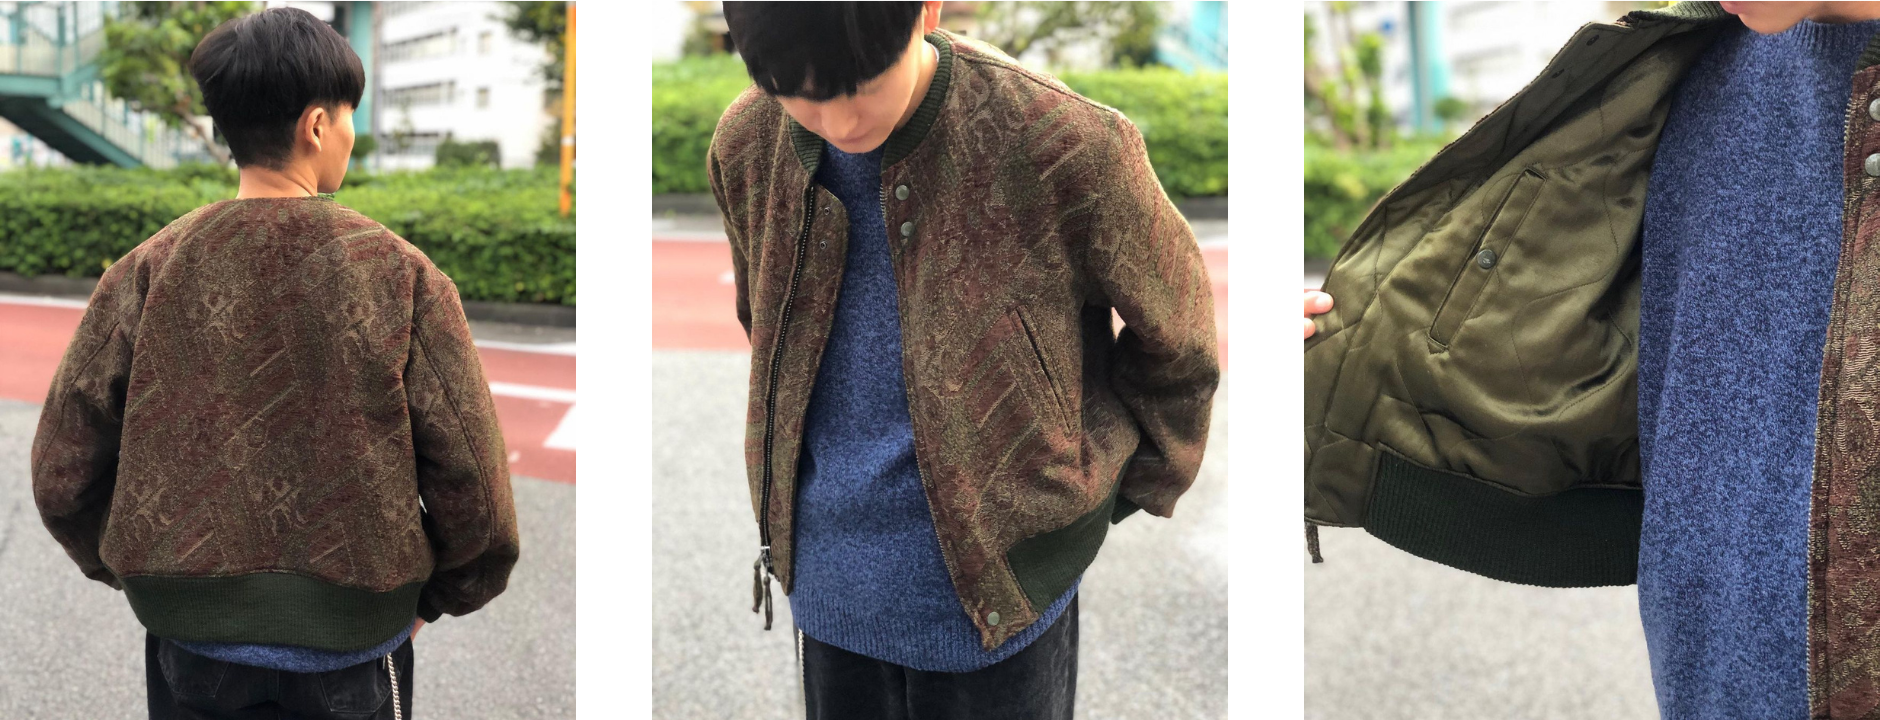 ENGINEERED GARMENTS SVR Jacket - Chenille